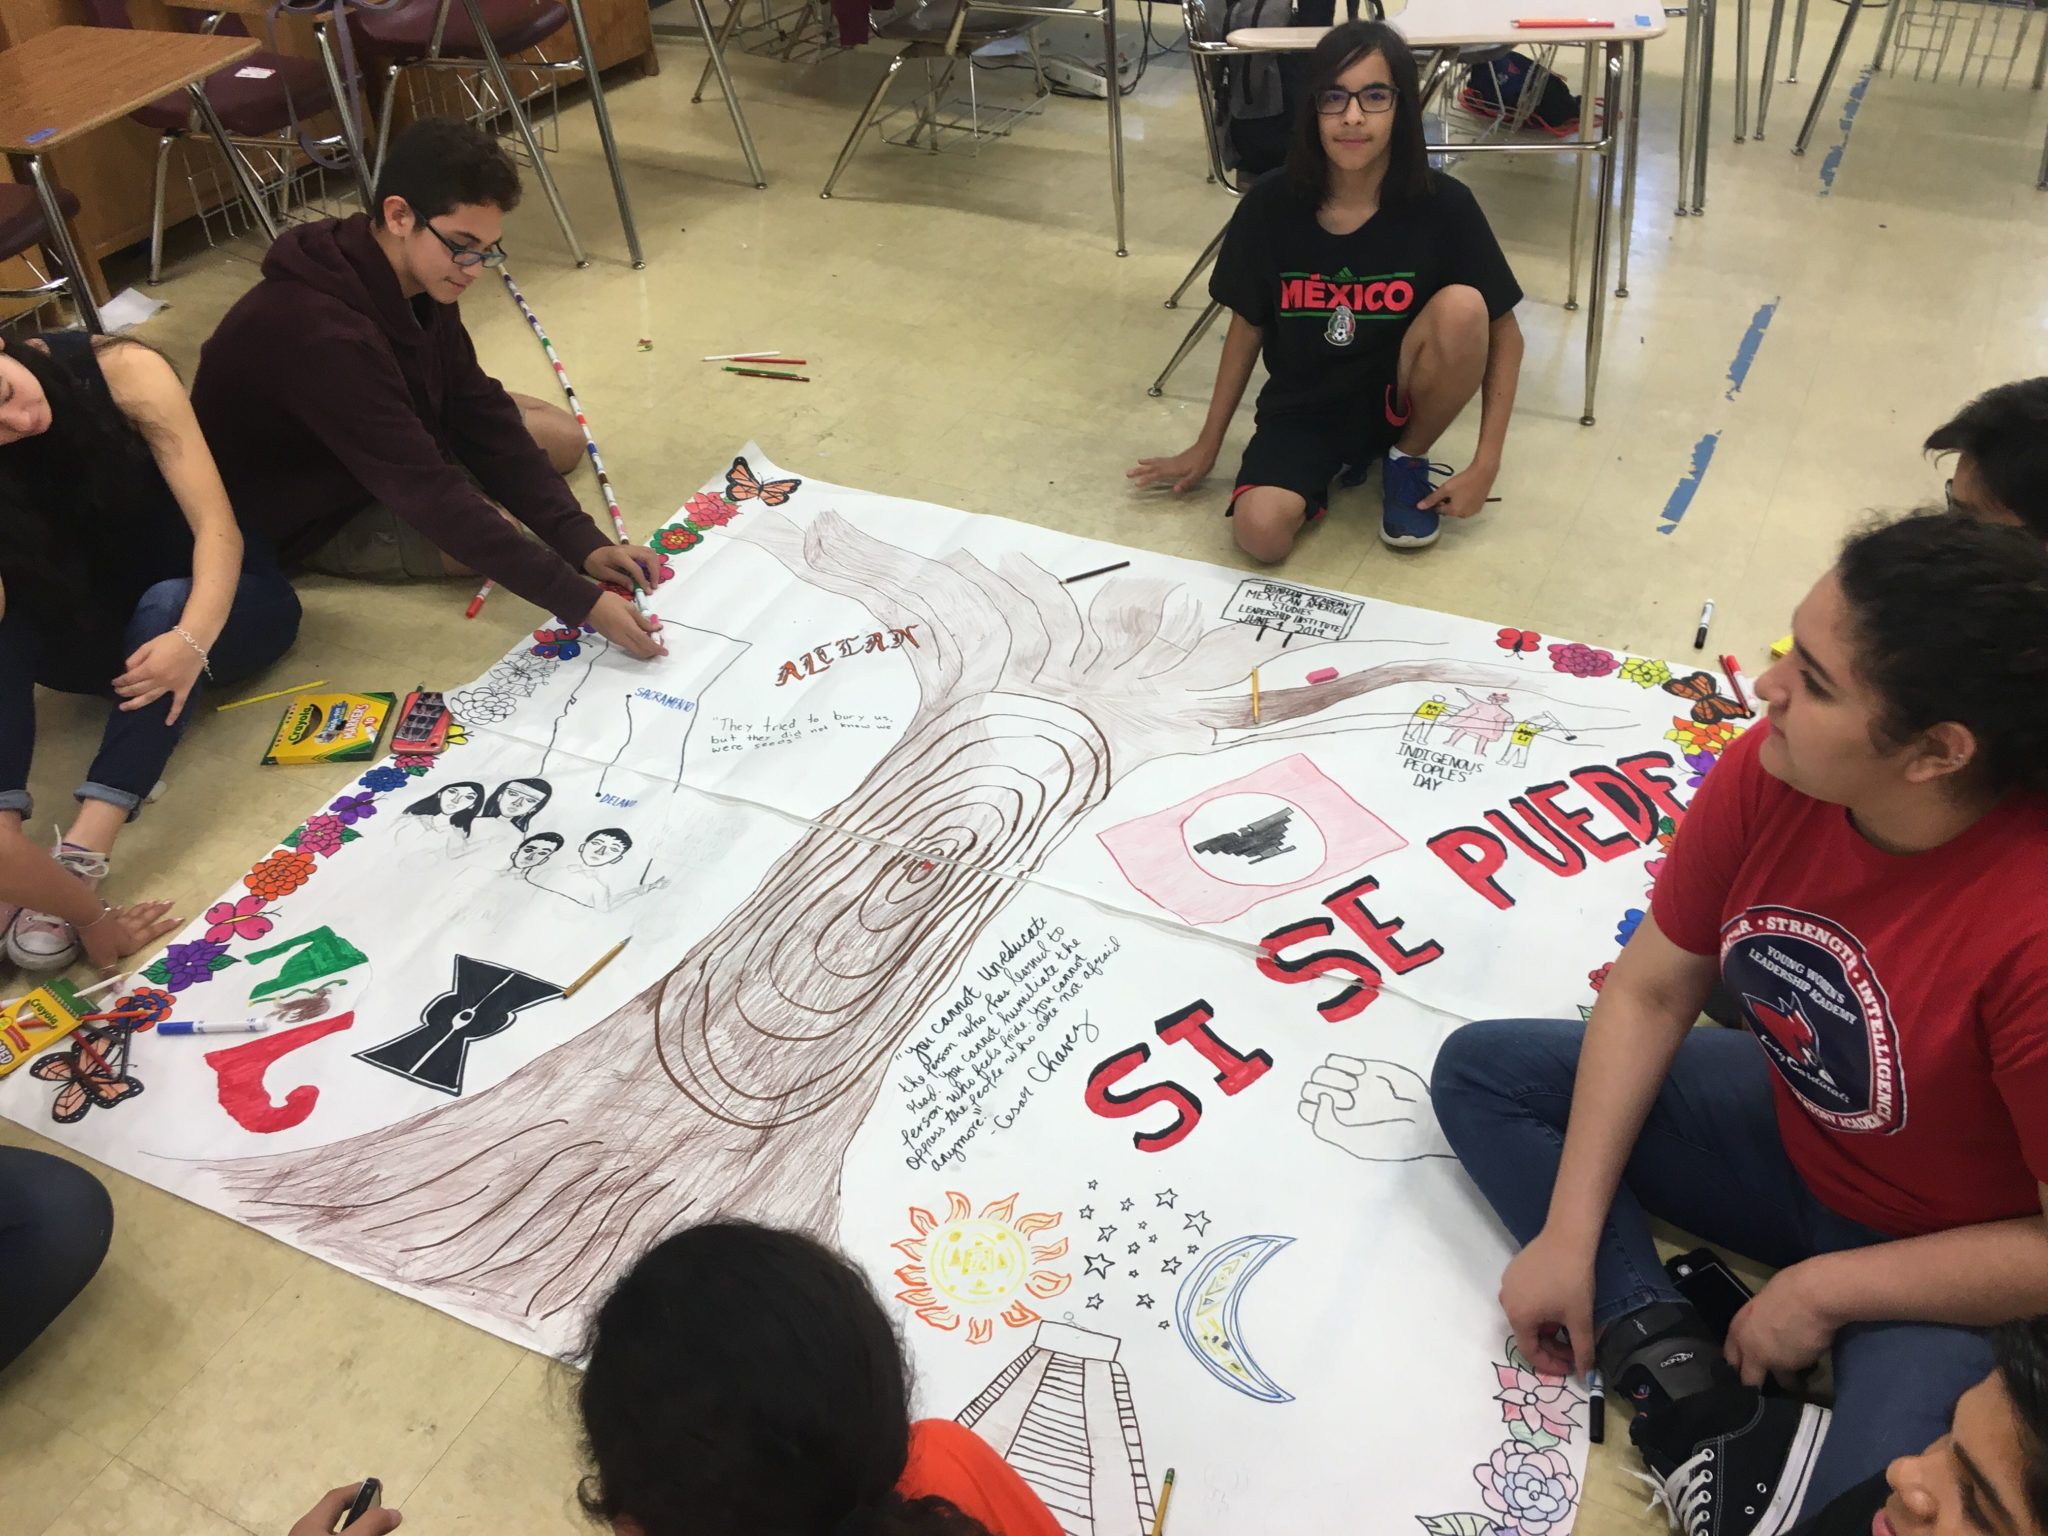 Students draw the history of Mexican Americans in a mural, with a large tree at the center.